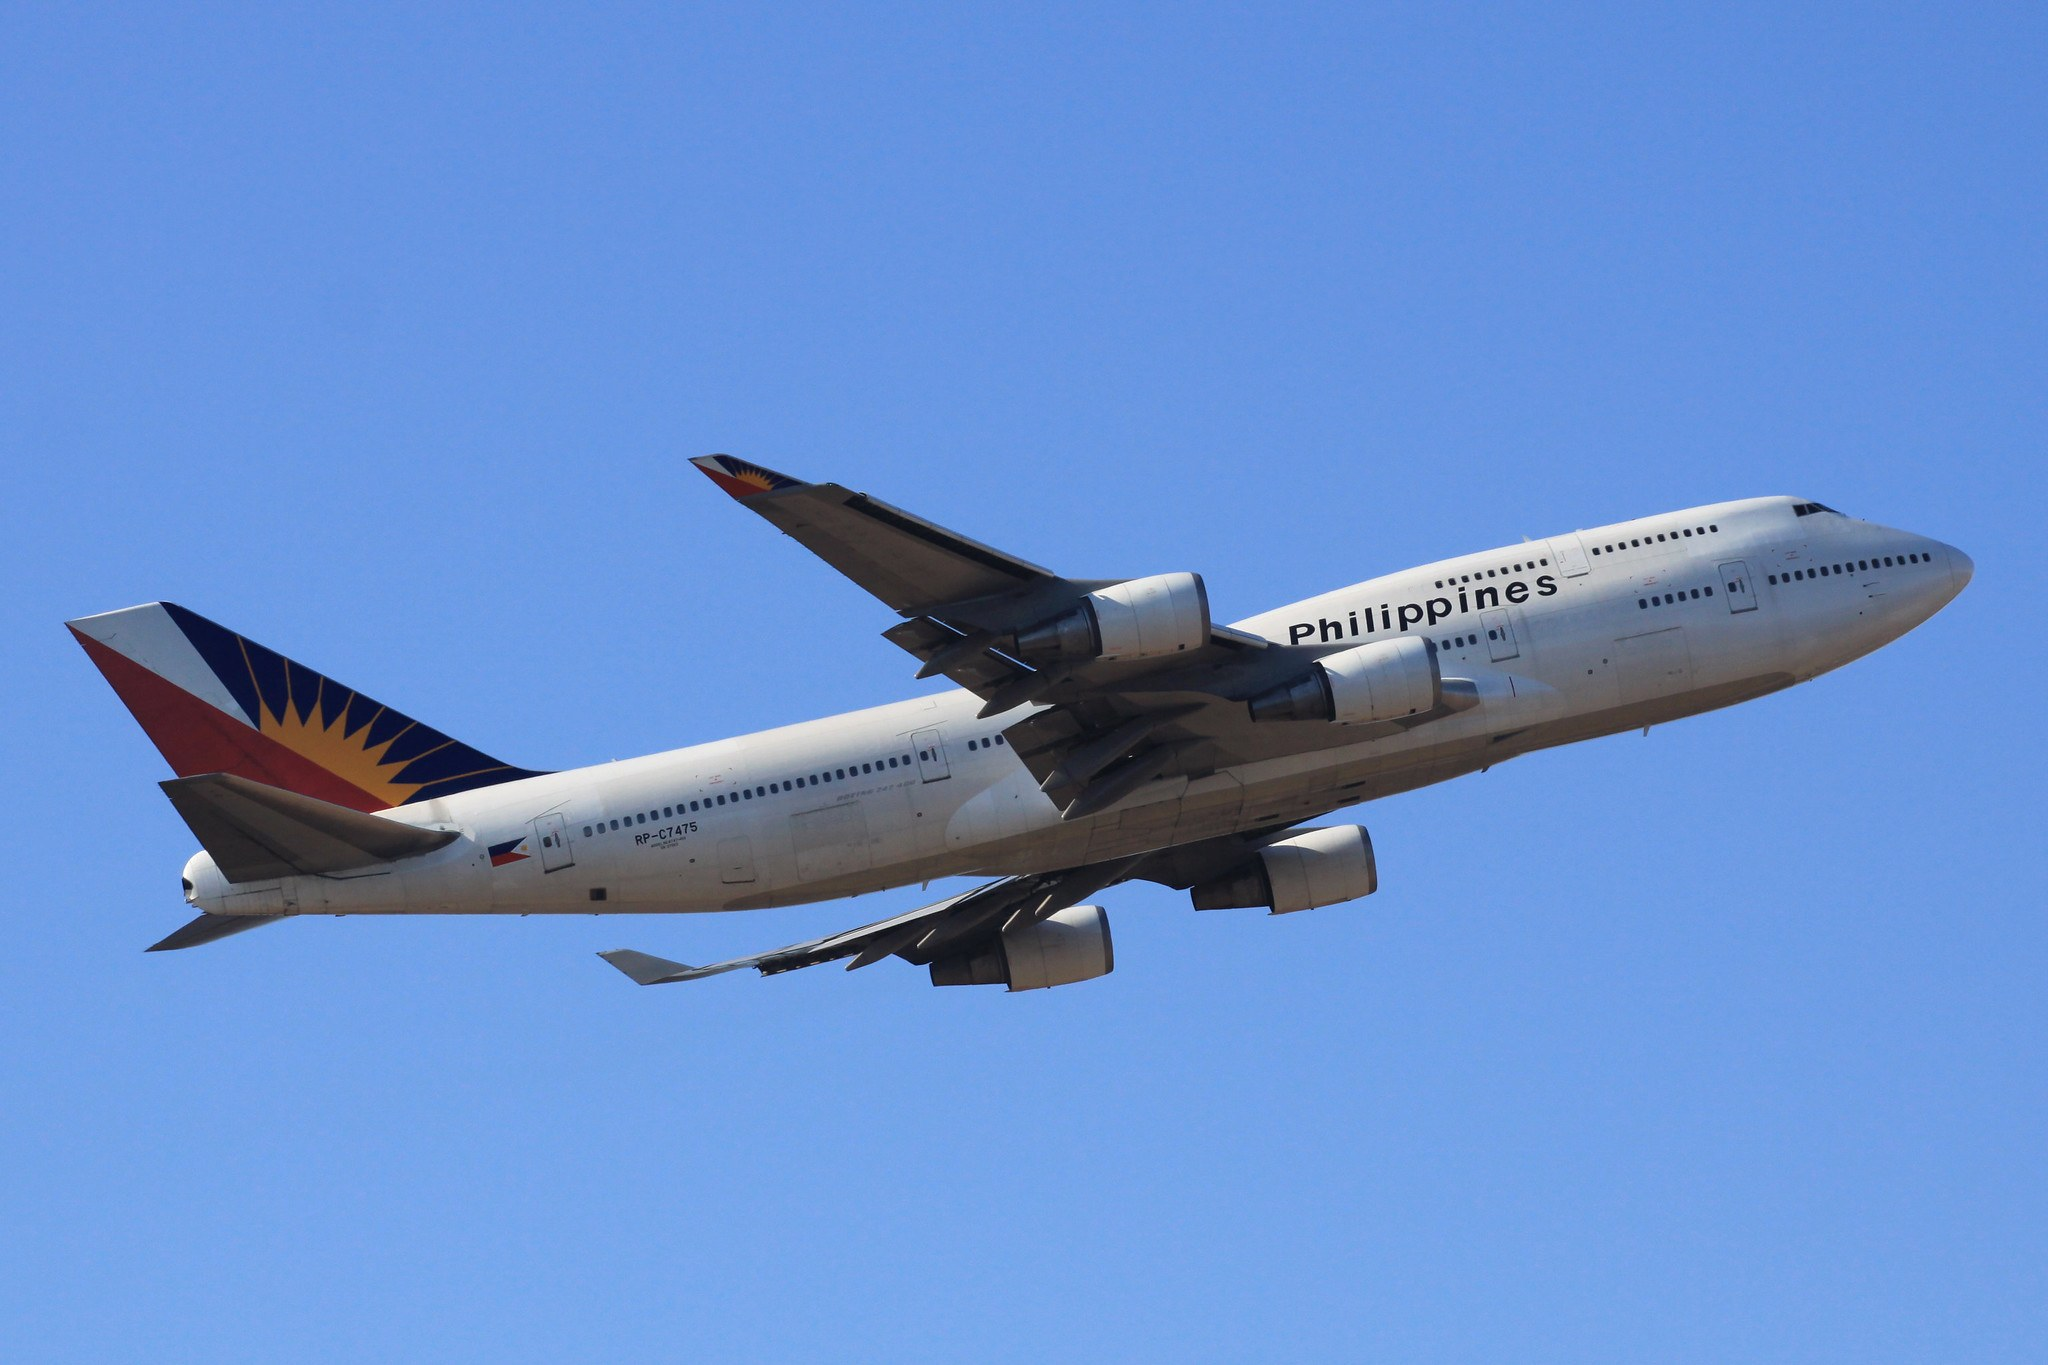 How to Get Refunds on Philippine Airlines